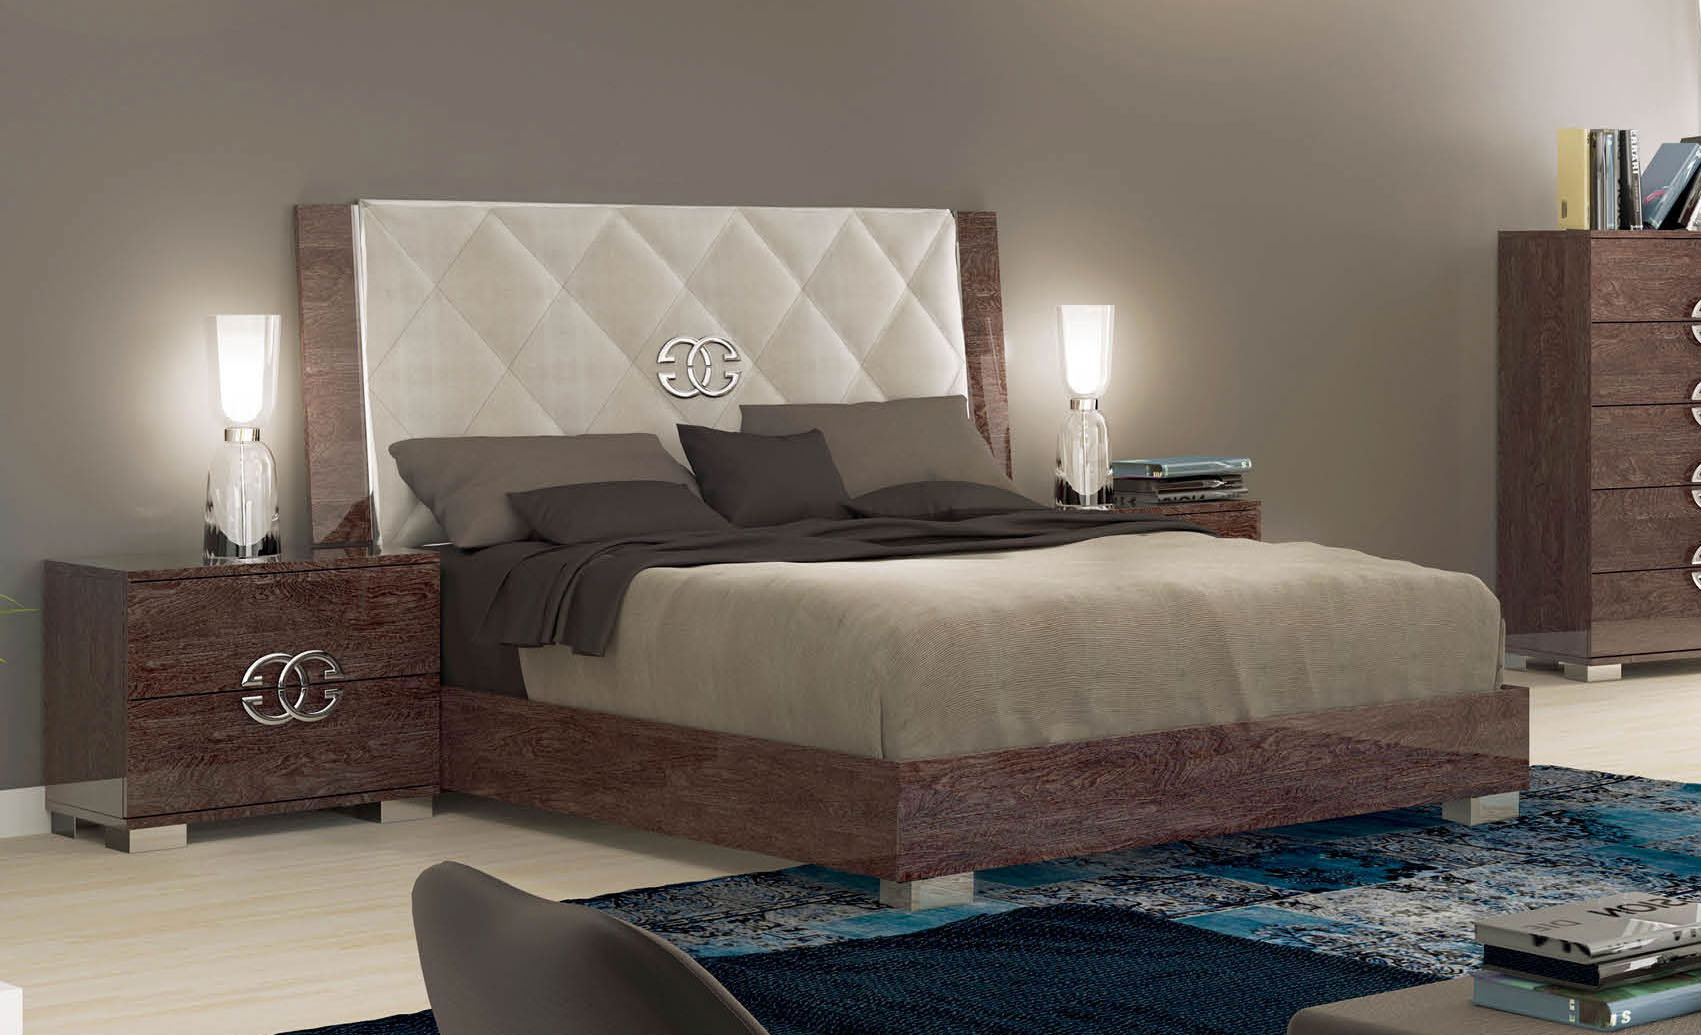 Unique leather high end platform bed birmingham alabama esfpre for Unique master bedroom furniture